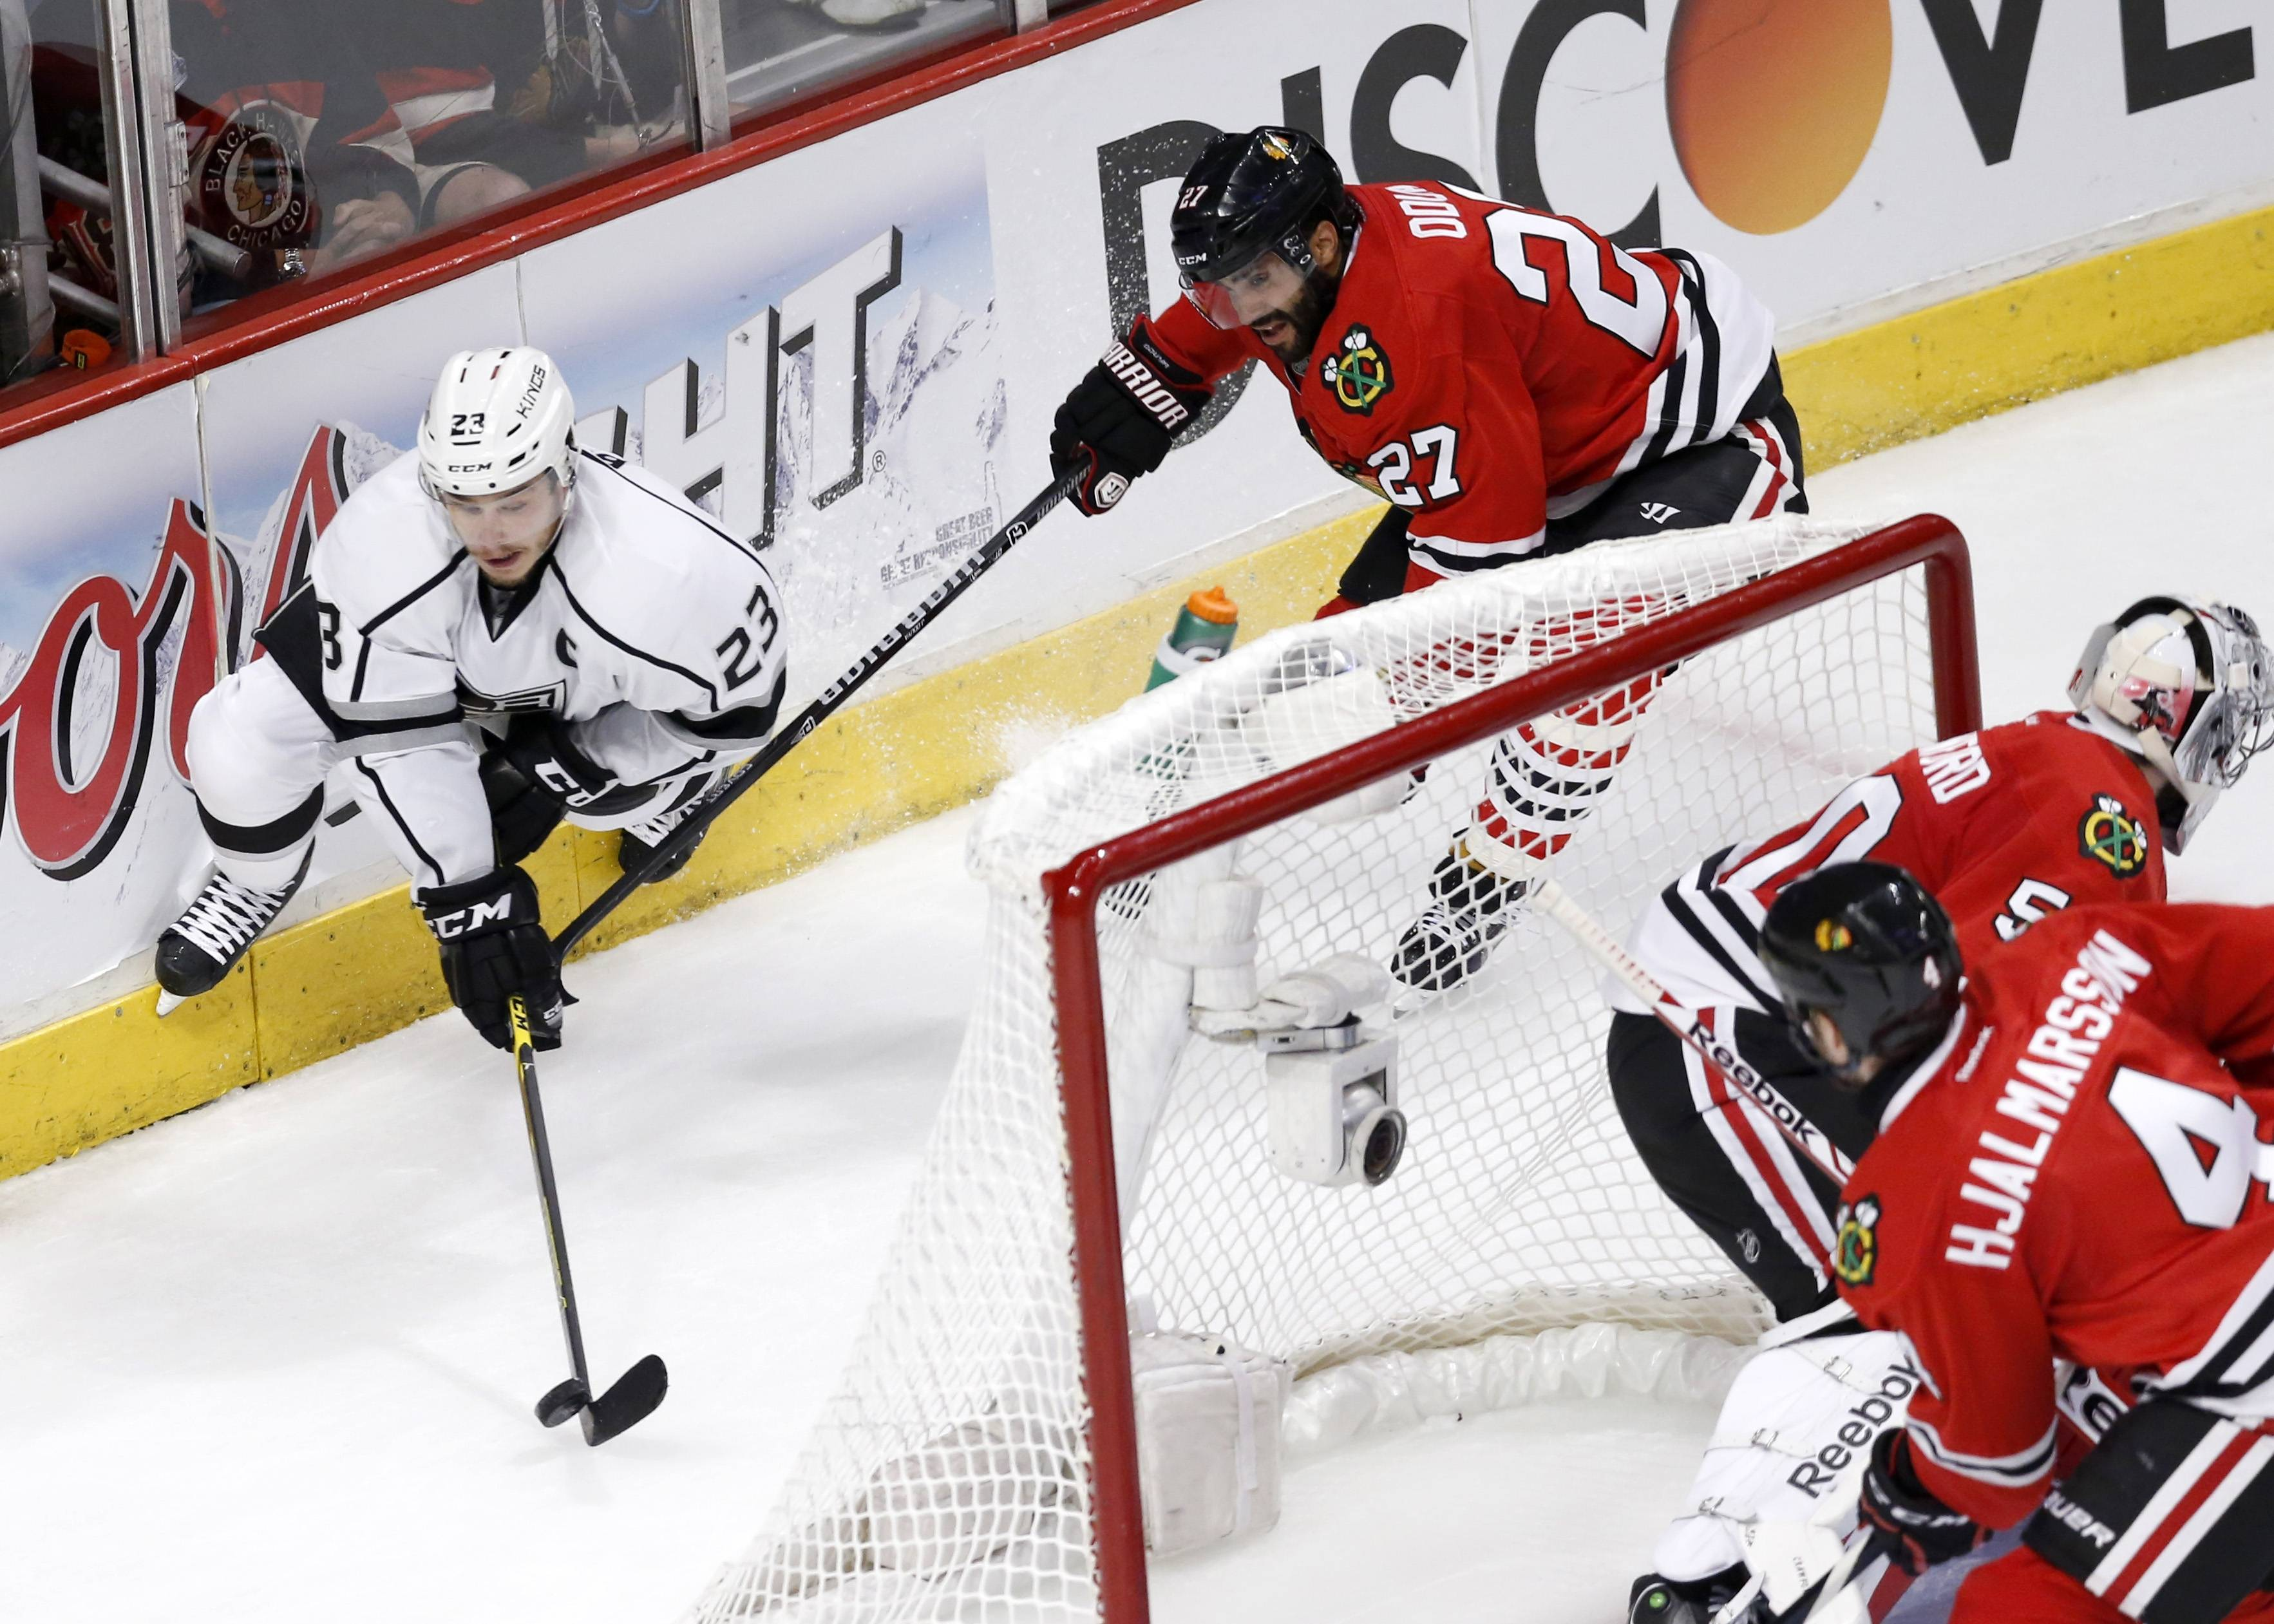 Associated Press In this photo taken Sunday, Chicago Blackhawks defenseman Johnny Oduya (27) forces Los Angeles Kings right wing Dustin Brown (23) into the boards as defenseman Niklas Hjalmarsson (4) watches during the second period of Game 1 of the Western Conference finals in the NHL hockey Stanley Cup playoffs in Chicago. The Blackhawks' defense is playing a key role in this postseason run as the Kings found out how hard it is to score on the defending Stanley Cup champions.